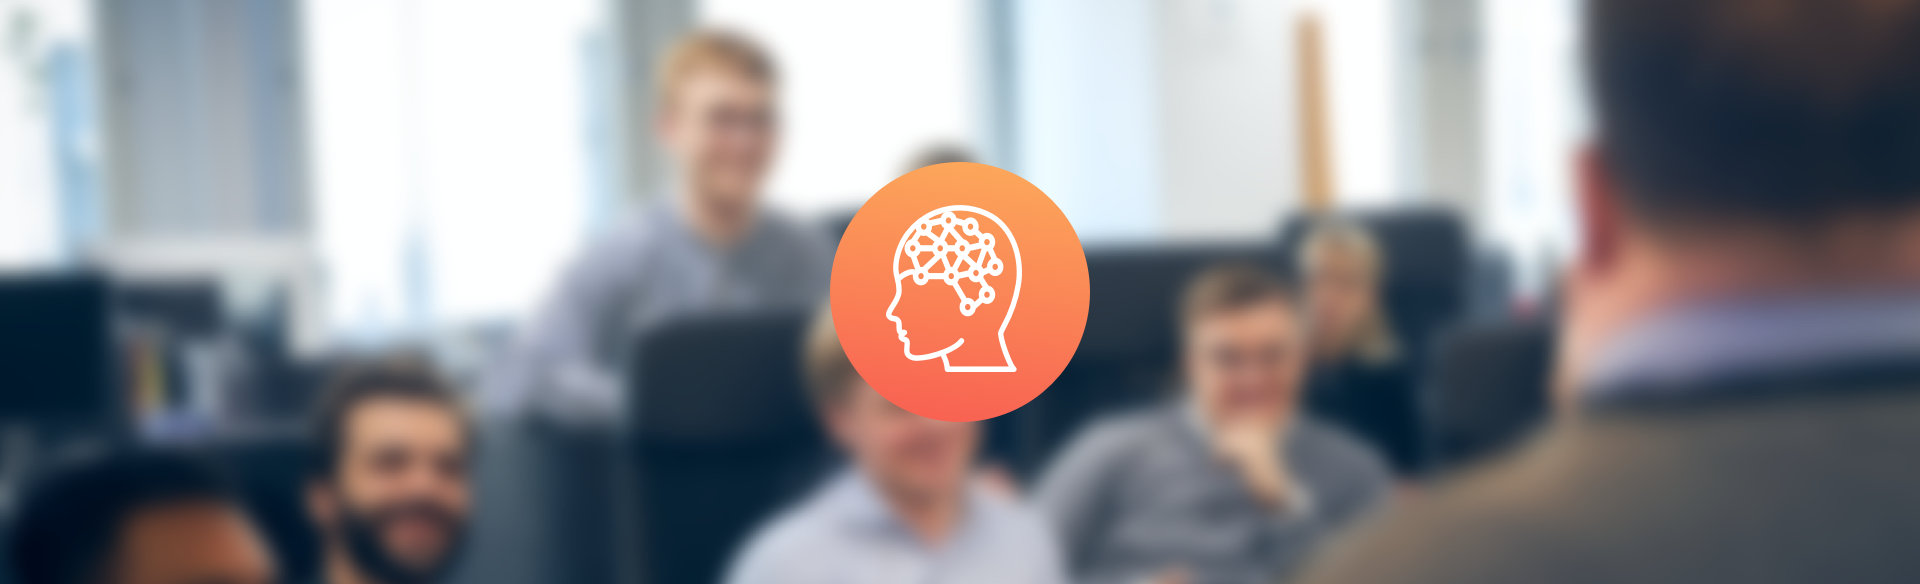 Smarp Announces New Employee Communications Feature: A.I. Content